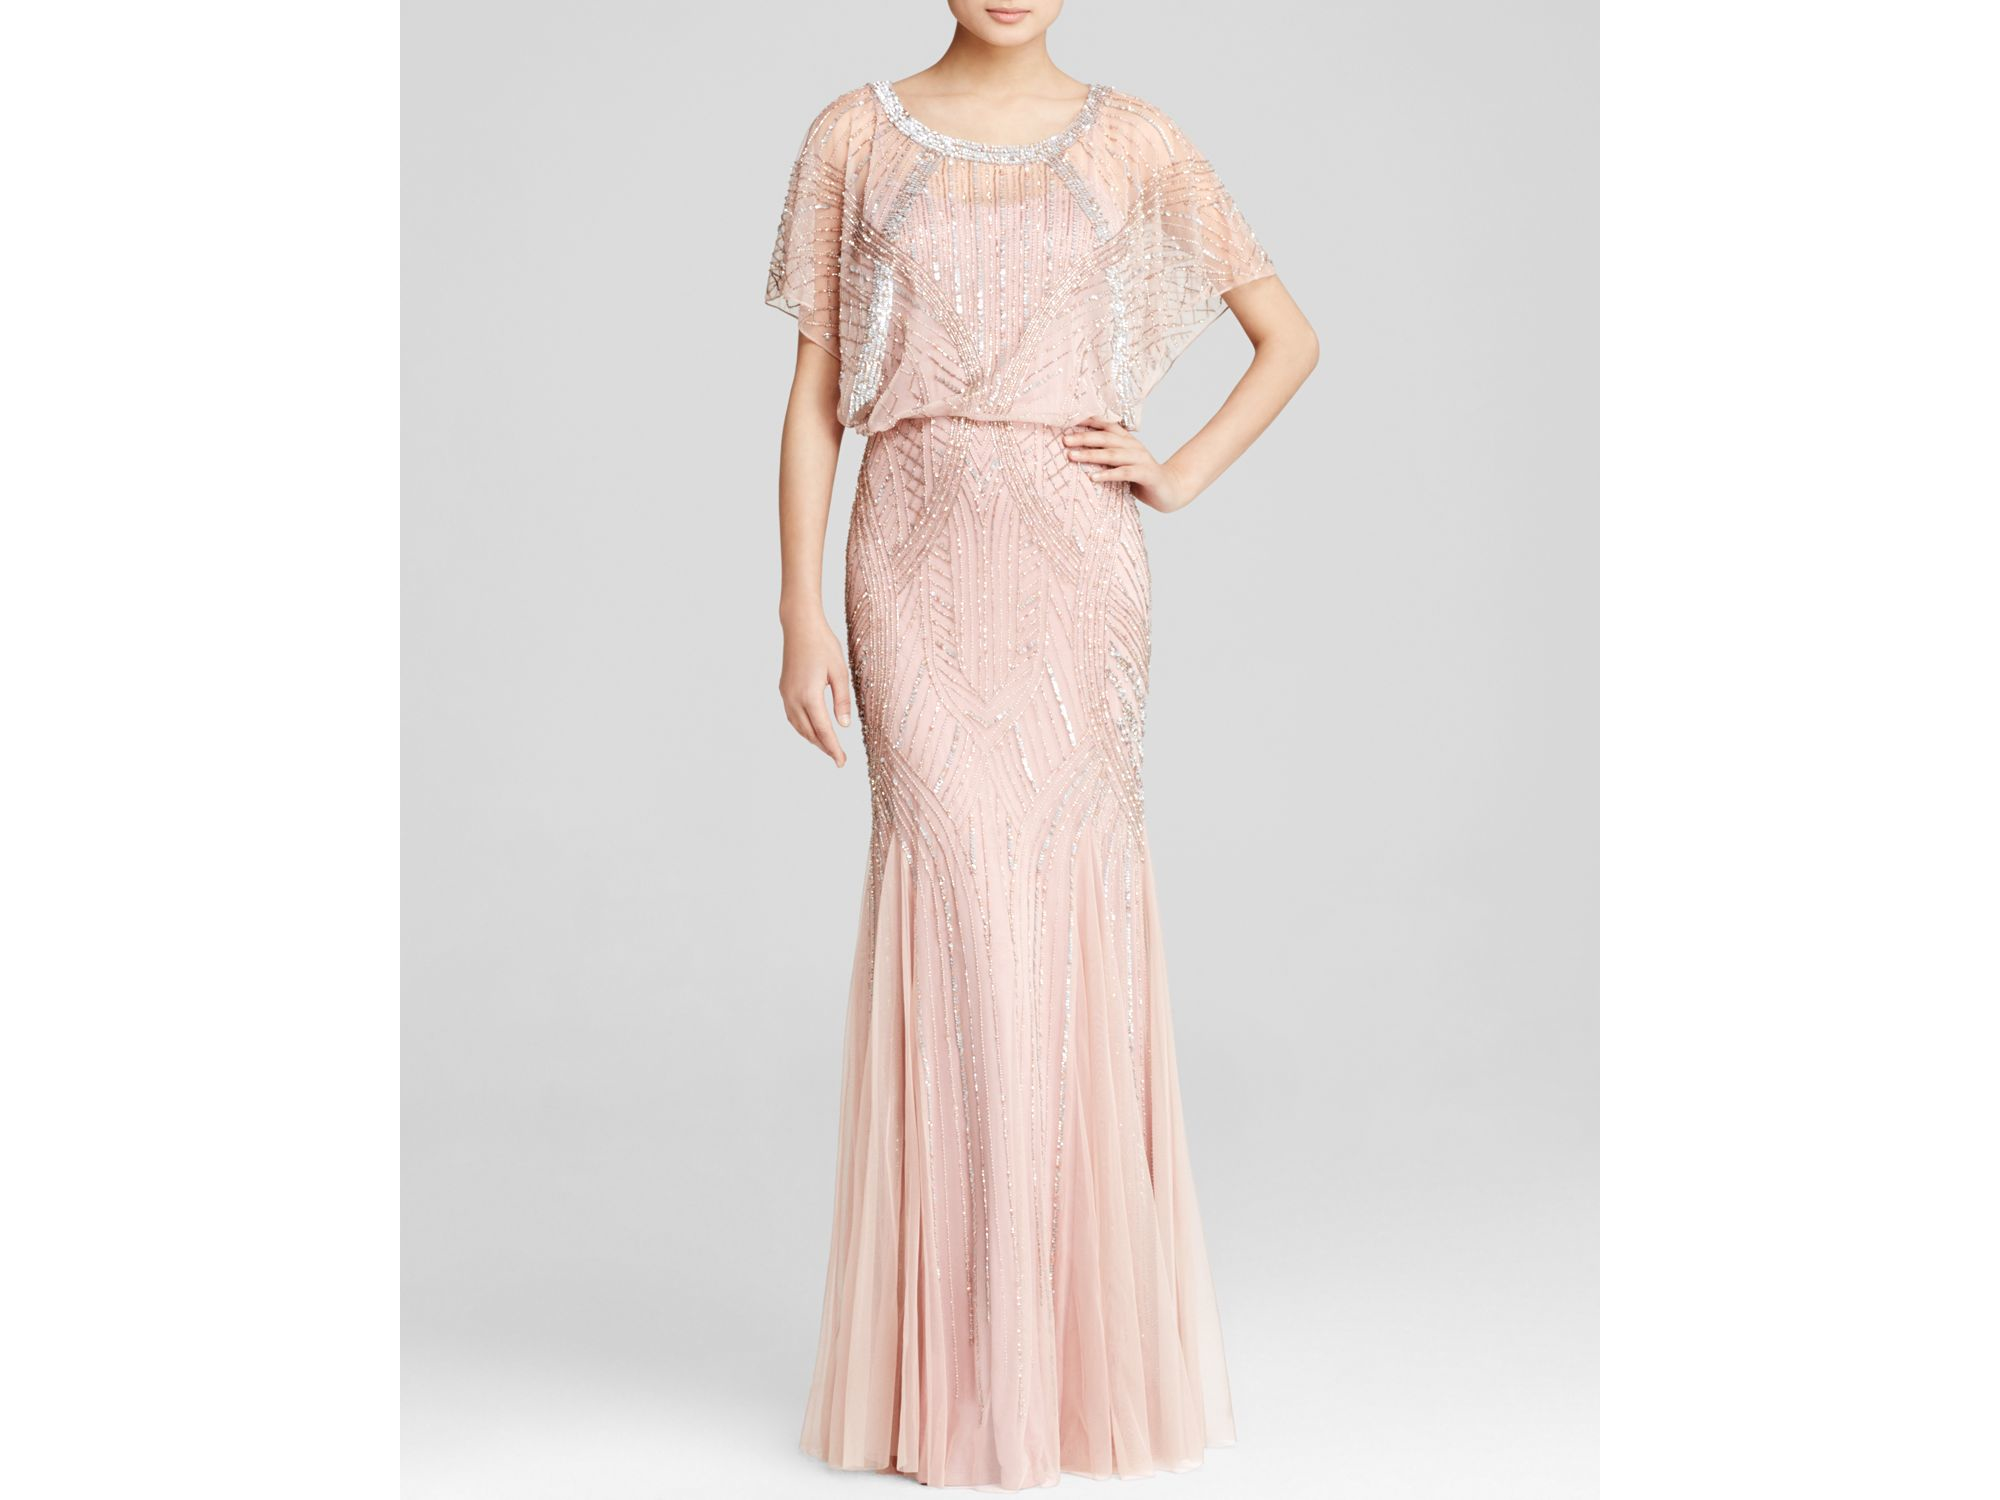 Lyst - Aidan Mattox Gown - Short Sleeve Beaded Godet in Pink